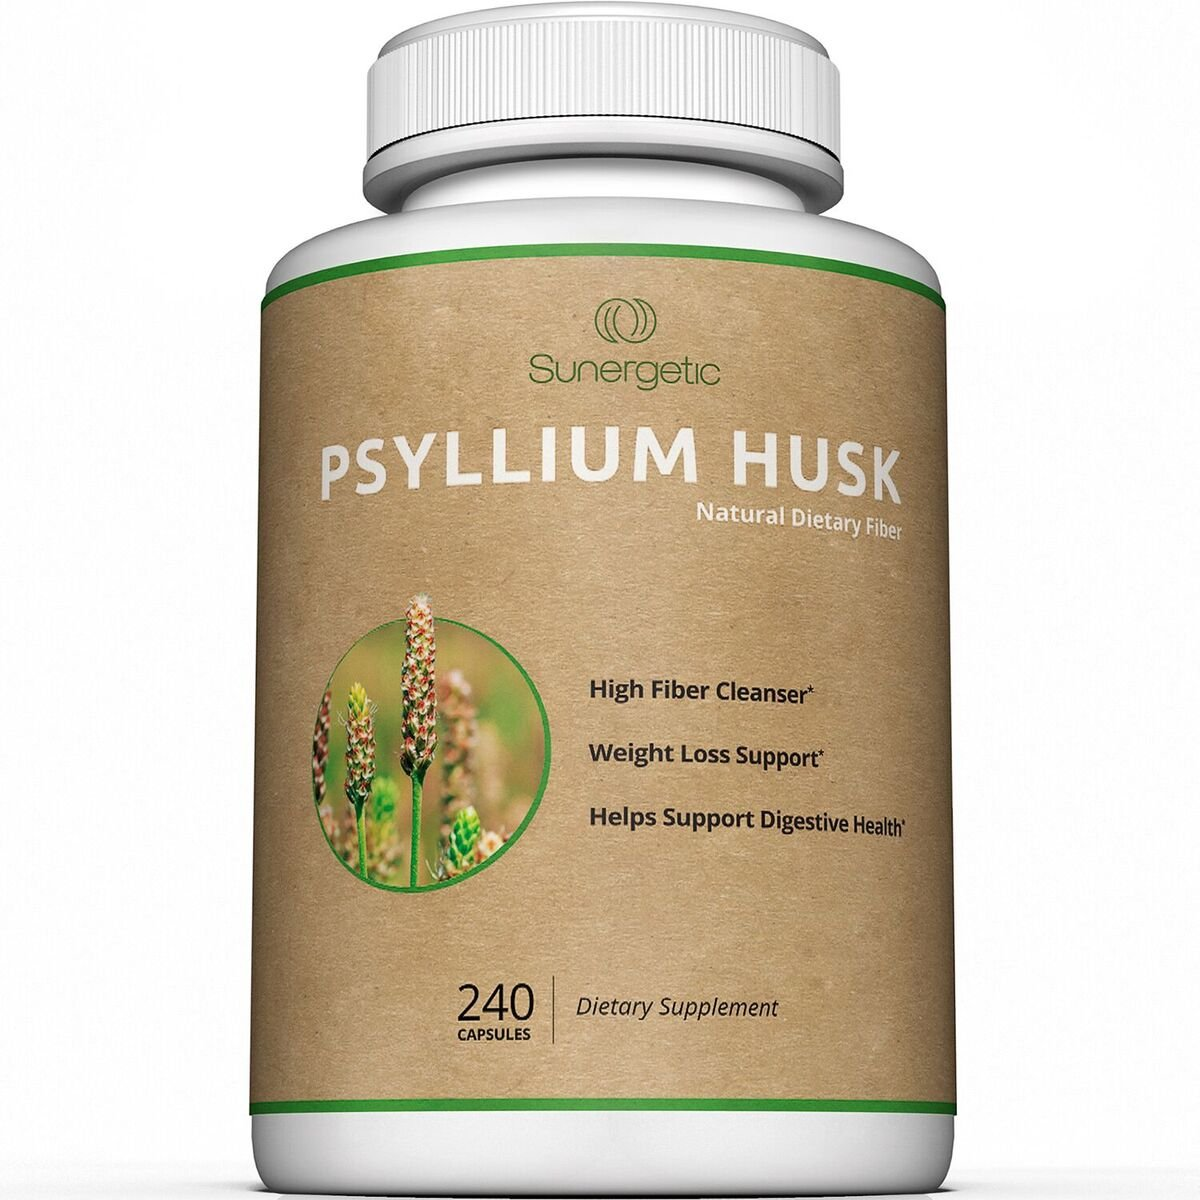 Best Psyllium Husk Capsules - 725mg Per Capsule -240 Capsules - Powerful Psyllium Husk Fiber Supplement Helps Support Digestion, Weight Loss and Constipation – Premium Natural High Fiber Cleanser